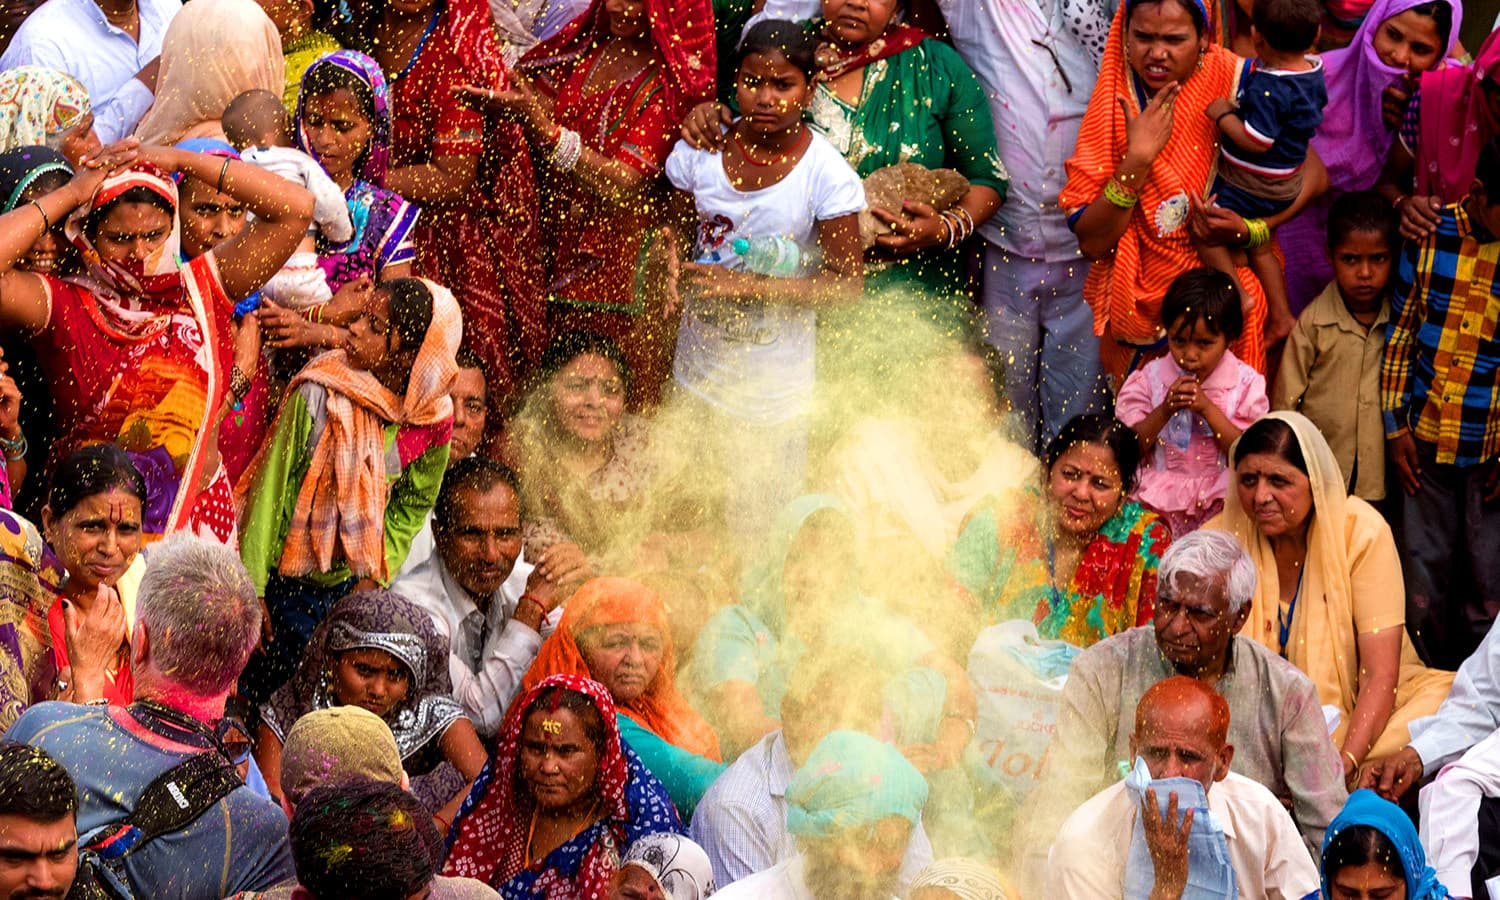 Coloured powder is thrown over Indian villagers during the Holi festival at the Radha Rani temple in Barsana. ─ AFP